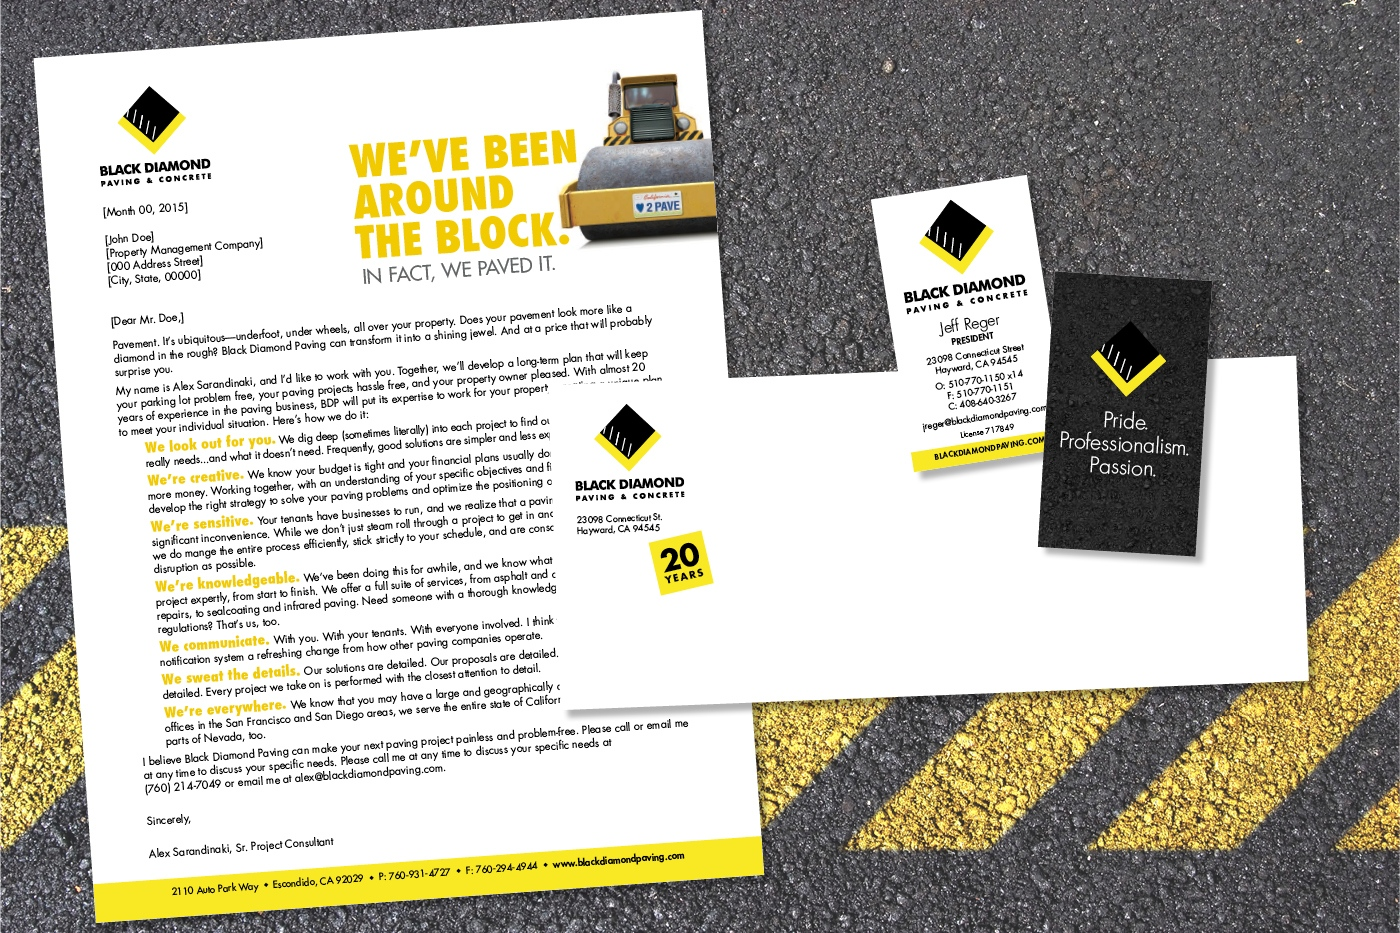 Black Diamond Paving Business Materials, showing letterhead, envelope, and front and back of business cards